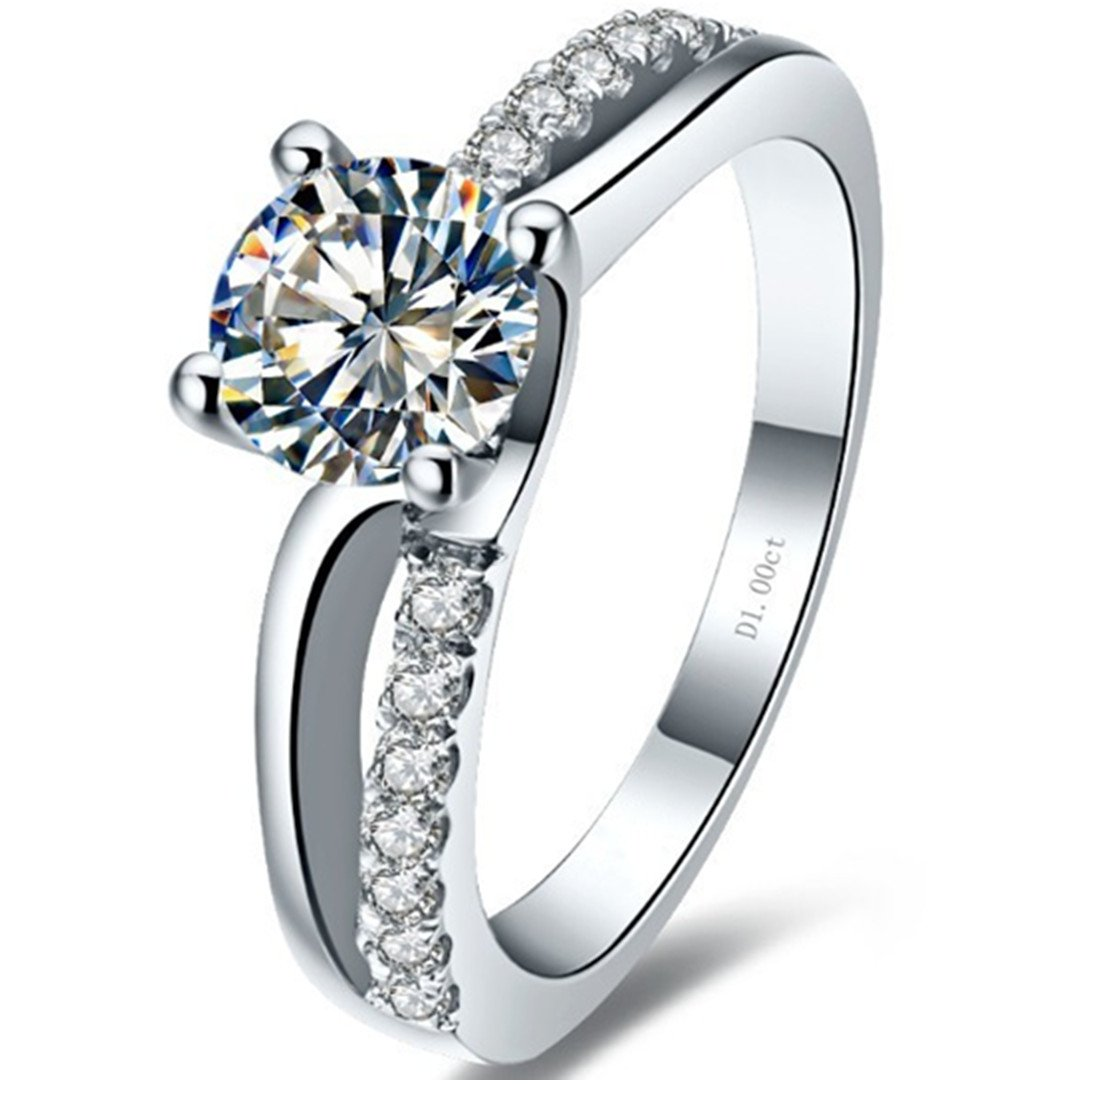 Superb 1CT NSCD Simulated Diamond Ring 4 Prongs Setting Engagement Ring for Women Sterling Silver by THREE MAN (Image #2)